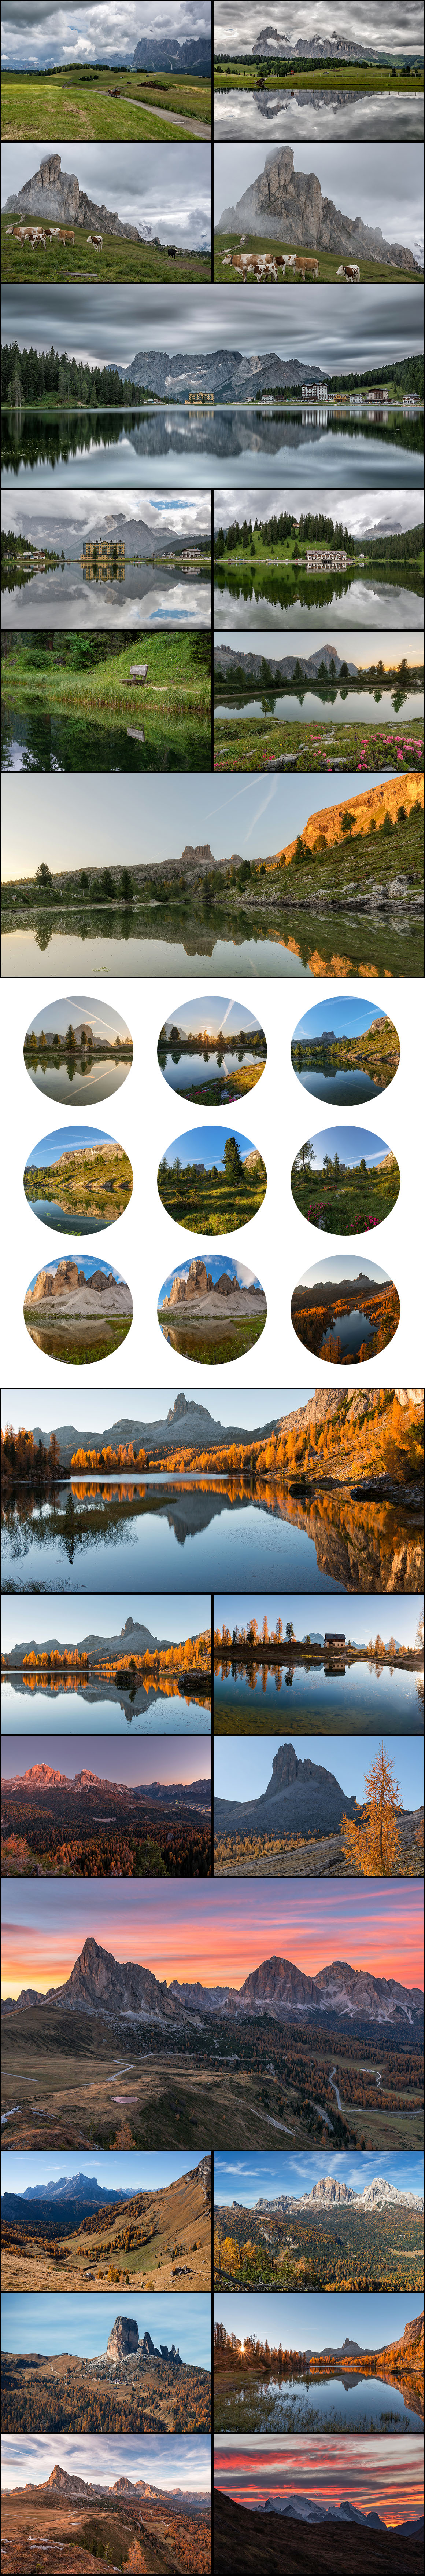 Ultimate Photo Bundle 2016 from DreamyPixel – 700+ Images example image 9